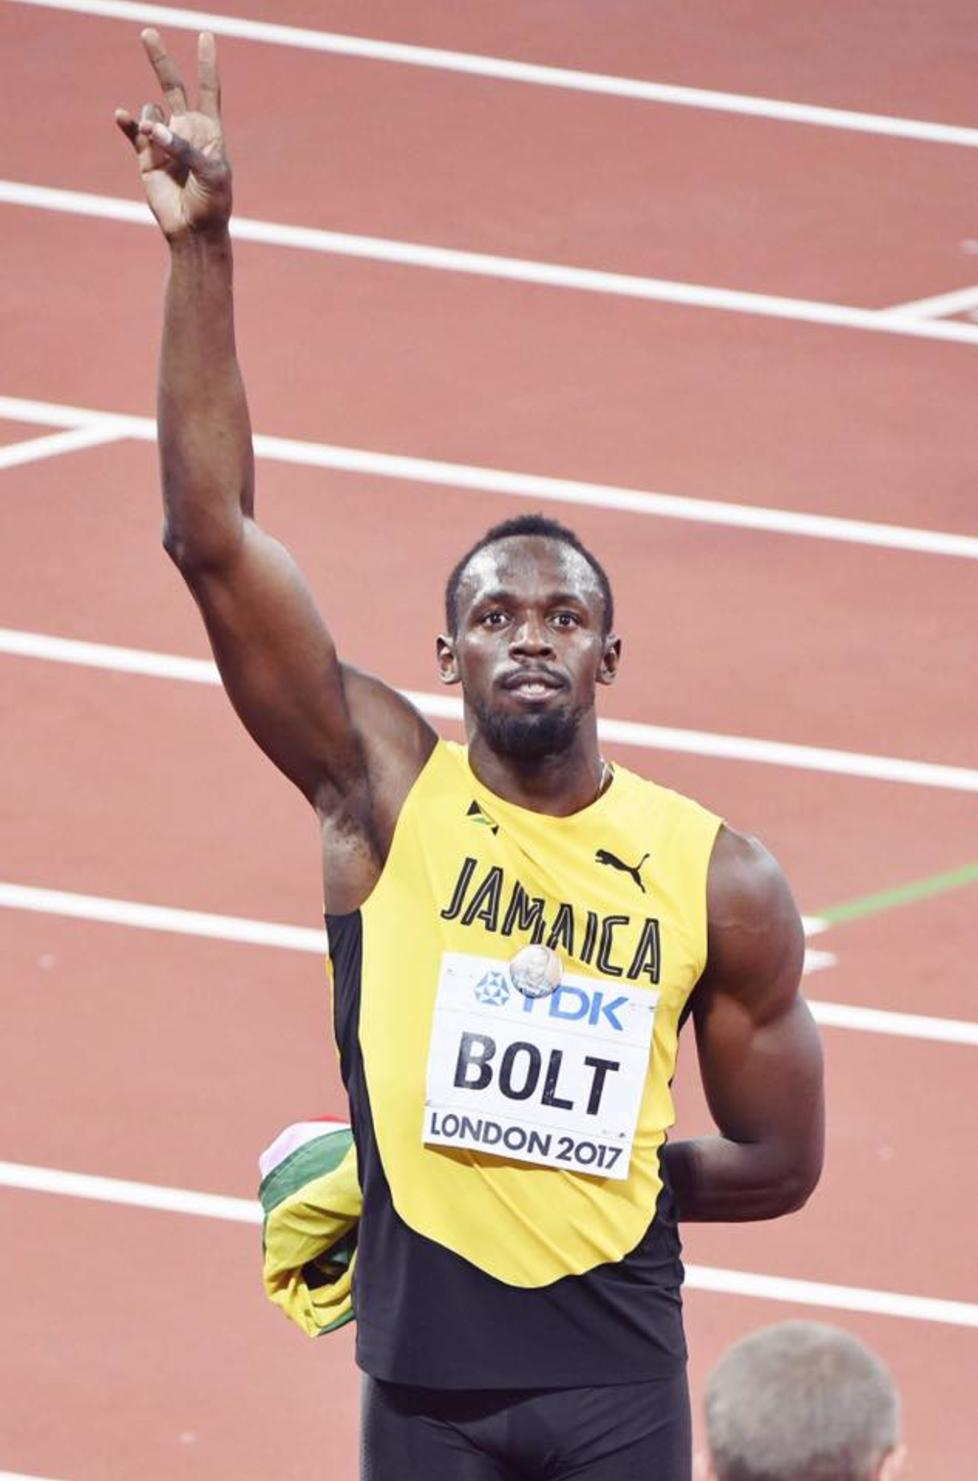 timeless design 3529a b2983 Usain Bolt is, without a doubt, the greatest sprinter of all time. Not just  because of his running prowess, but because he is a well-rounded athlete  that ...